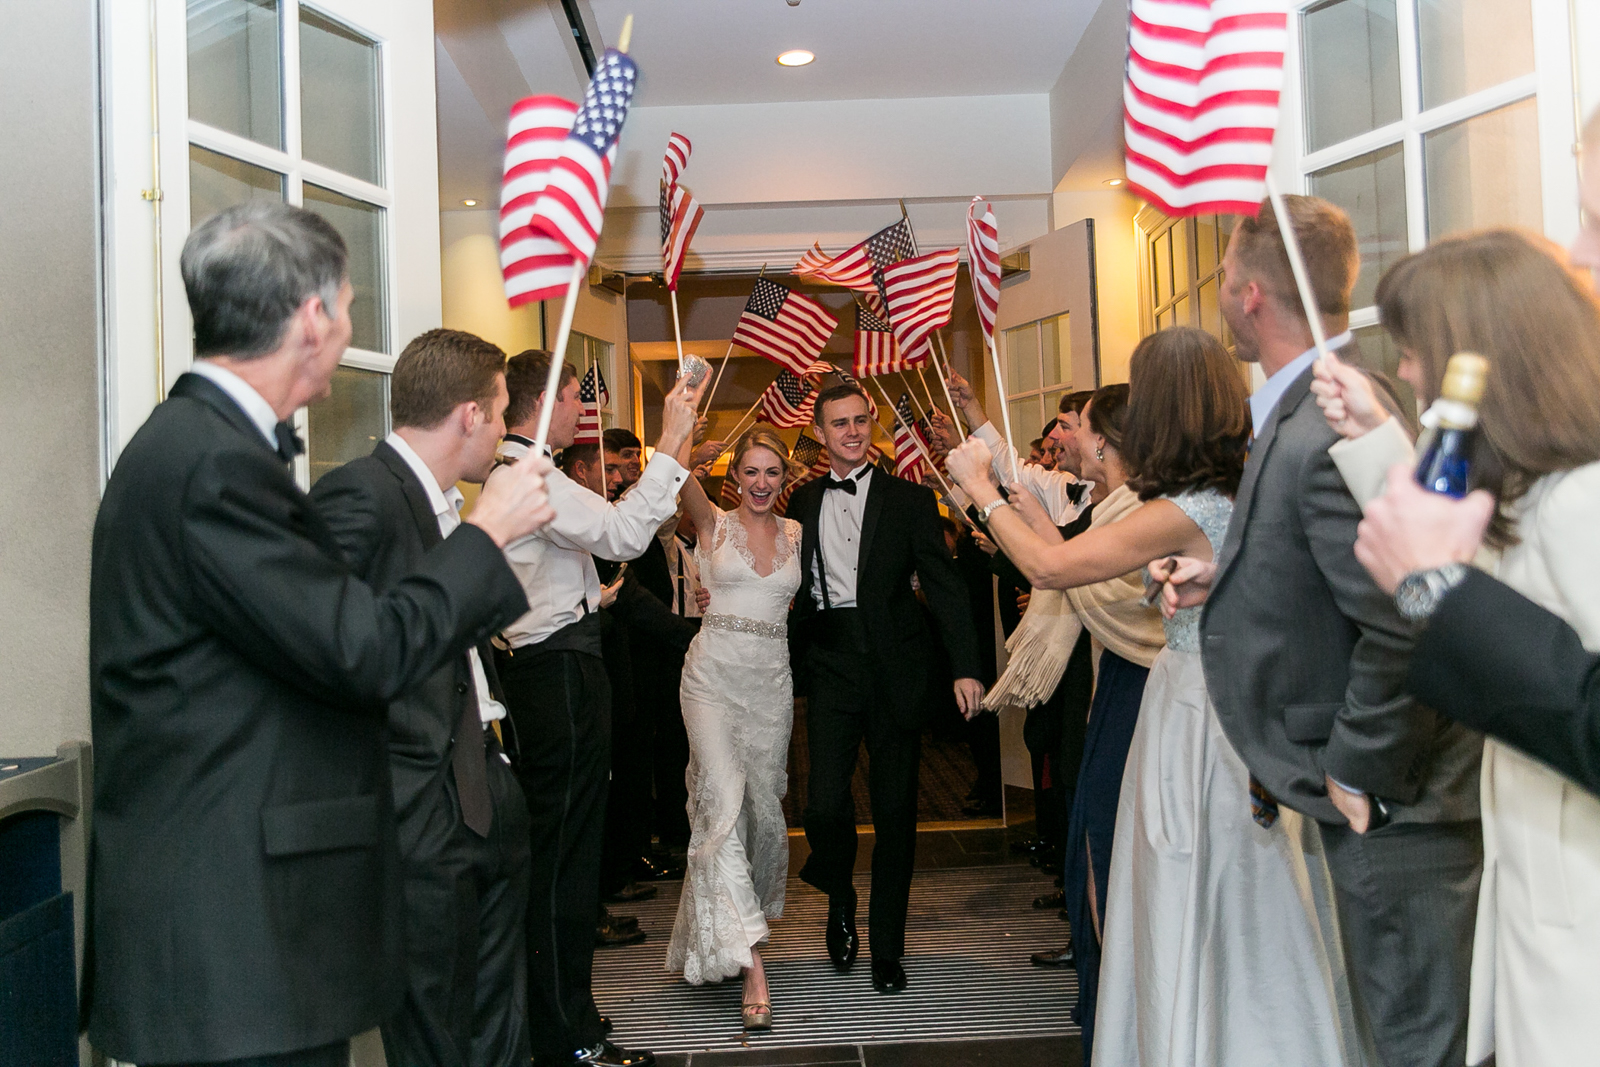 Bride and groom exit guests waving American flags